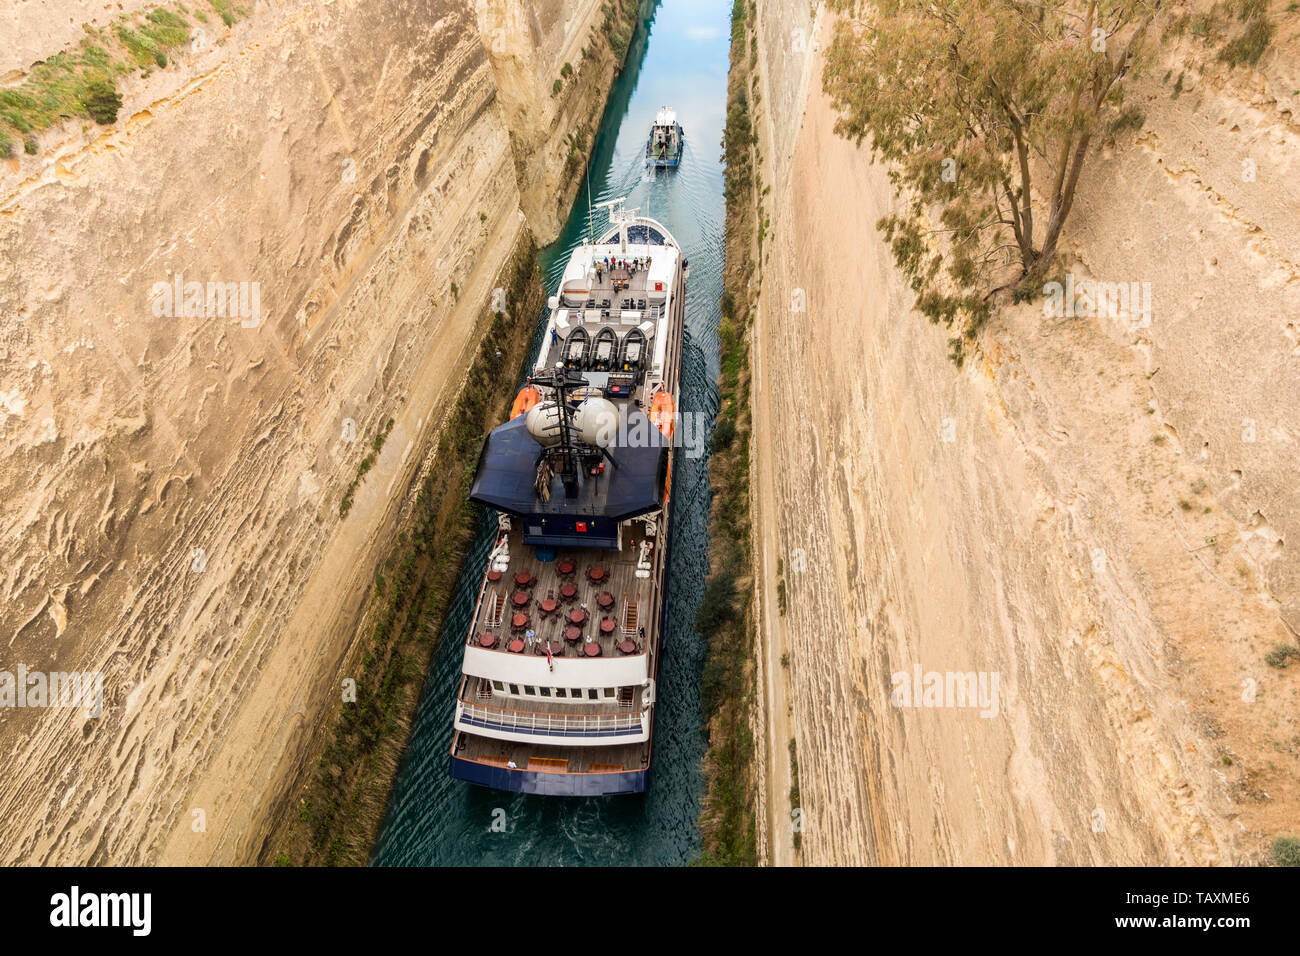 The Corinth Canal, Greece, a channel done in 1893 that cuts the narrow Isthmus of Corinth and separates the Peloponnese from the Greek mainland - Stock Image